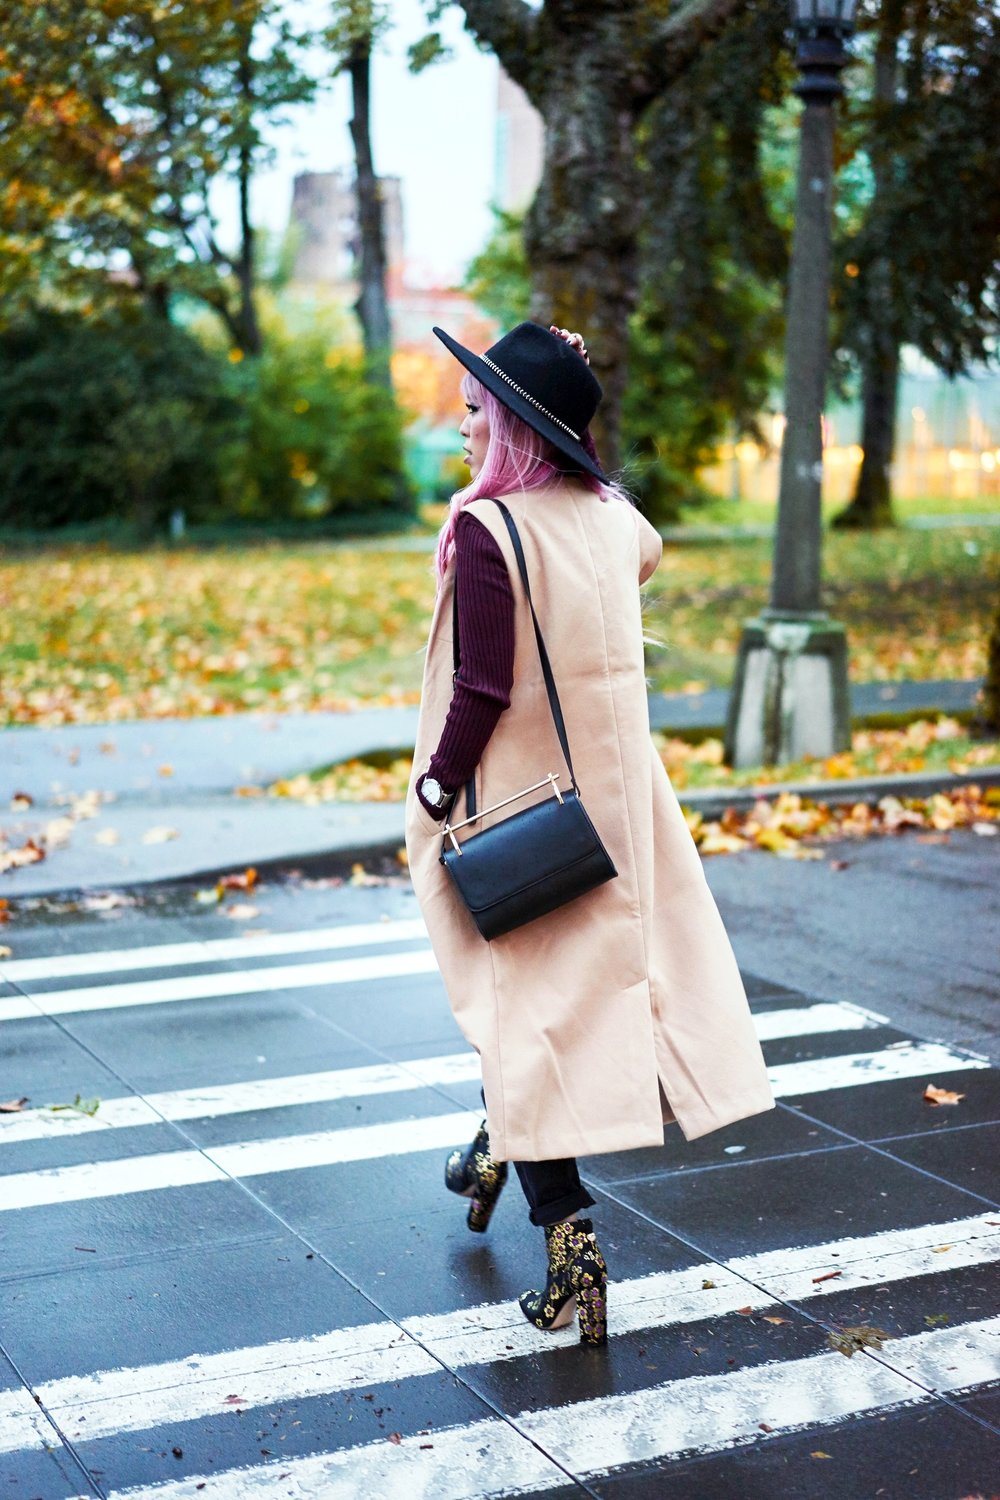 Forever 21 Fedora_Who What Wear : Target Rib Turtleneck_ASOS High Waist Mom Jeans_Ego Floral Print Ankle Boots_Christian Paul Marble Watch_Aika's Love Closet_Seattle Fashion Blogger_Japanese_Pink Hair 14